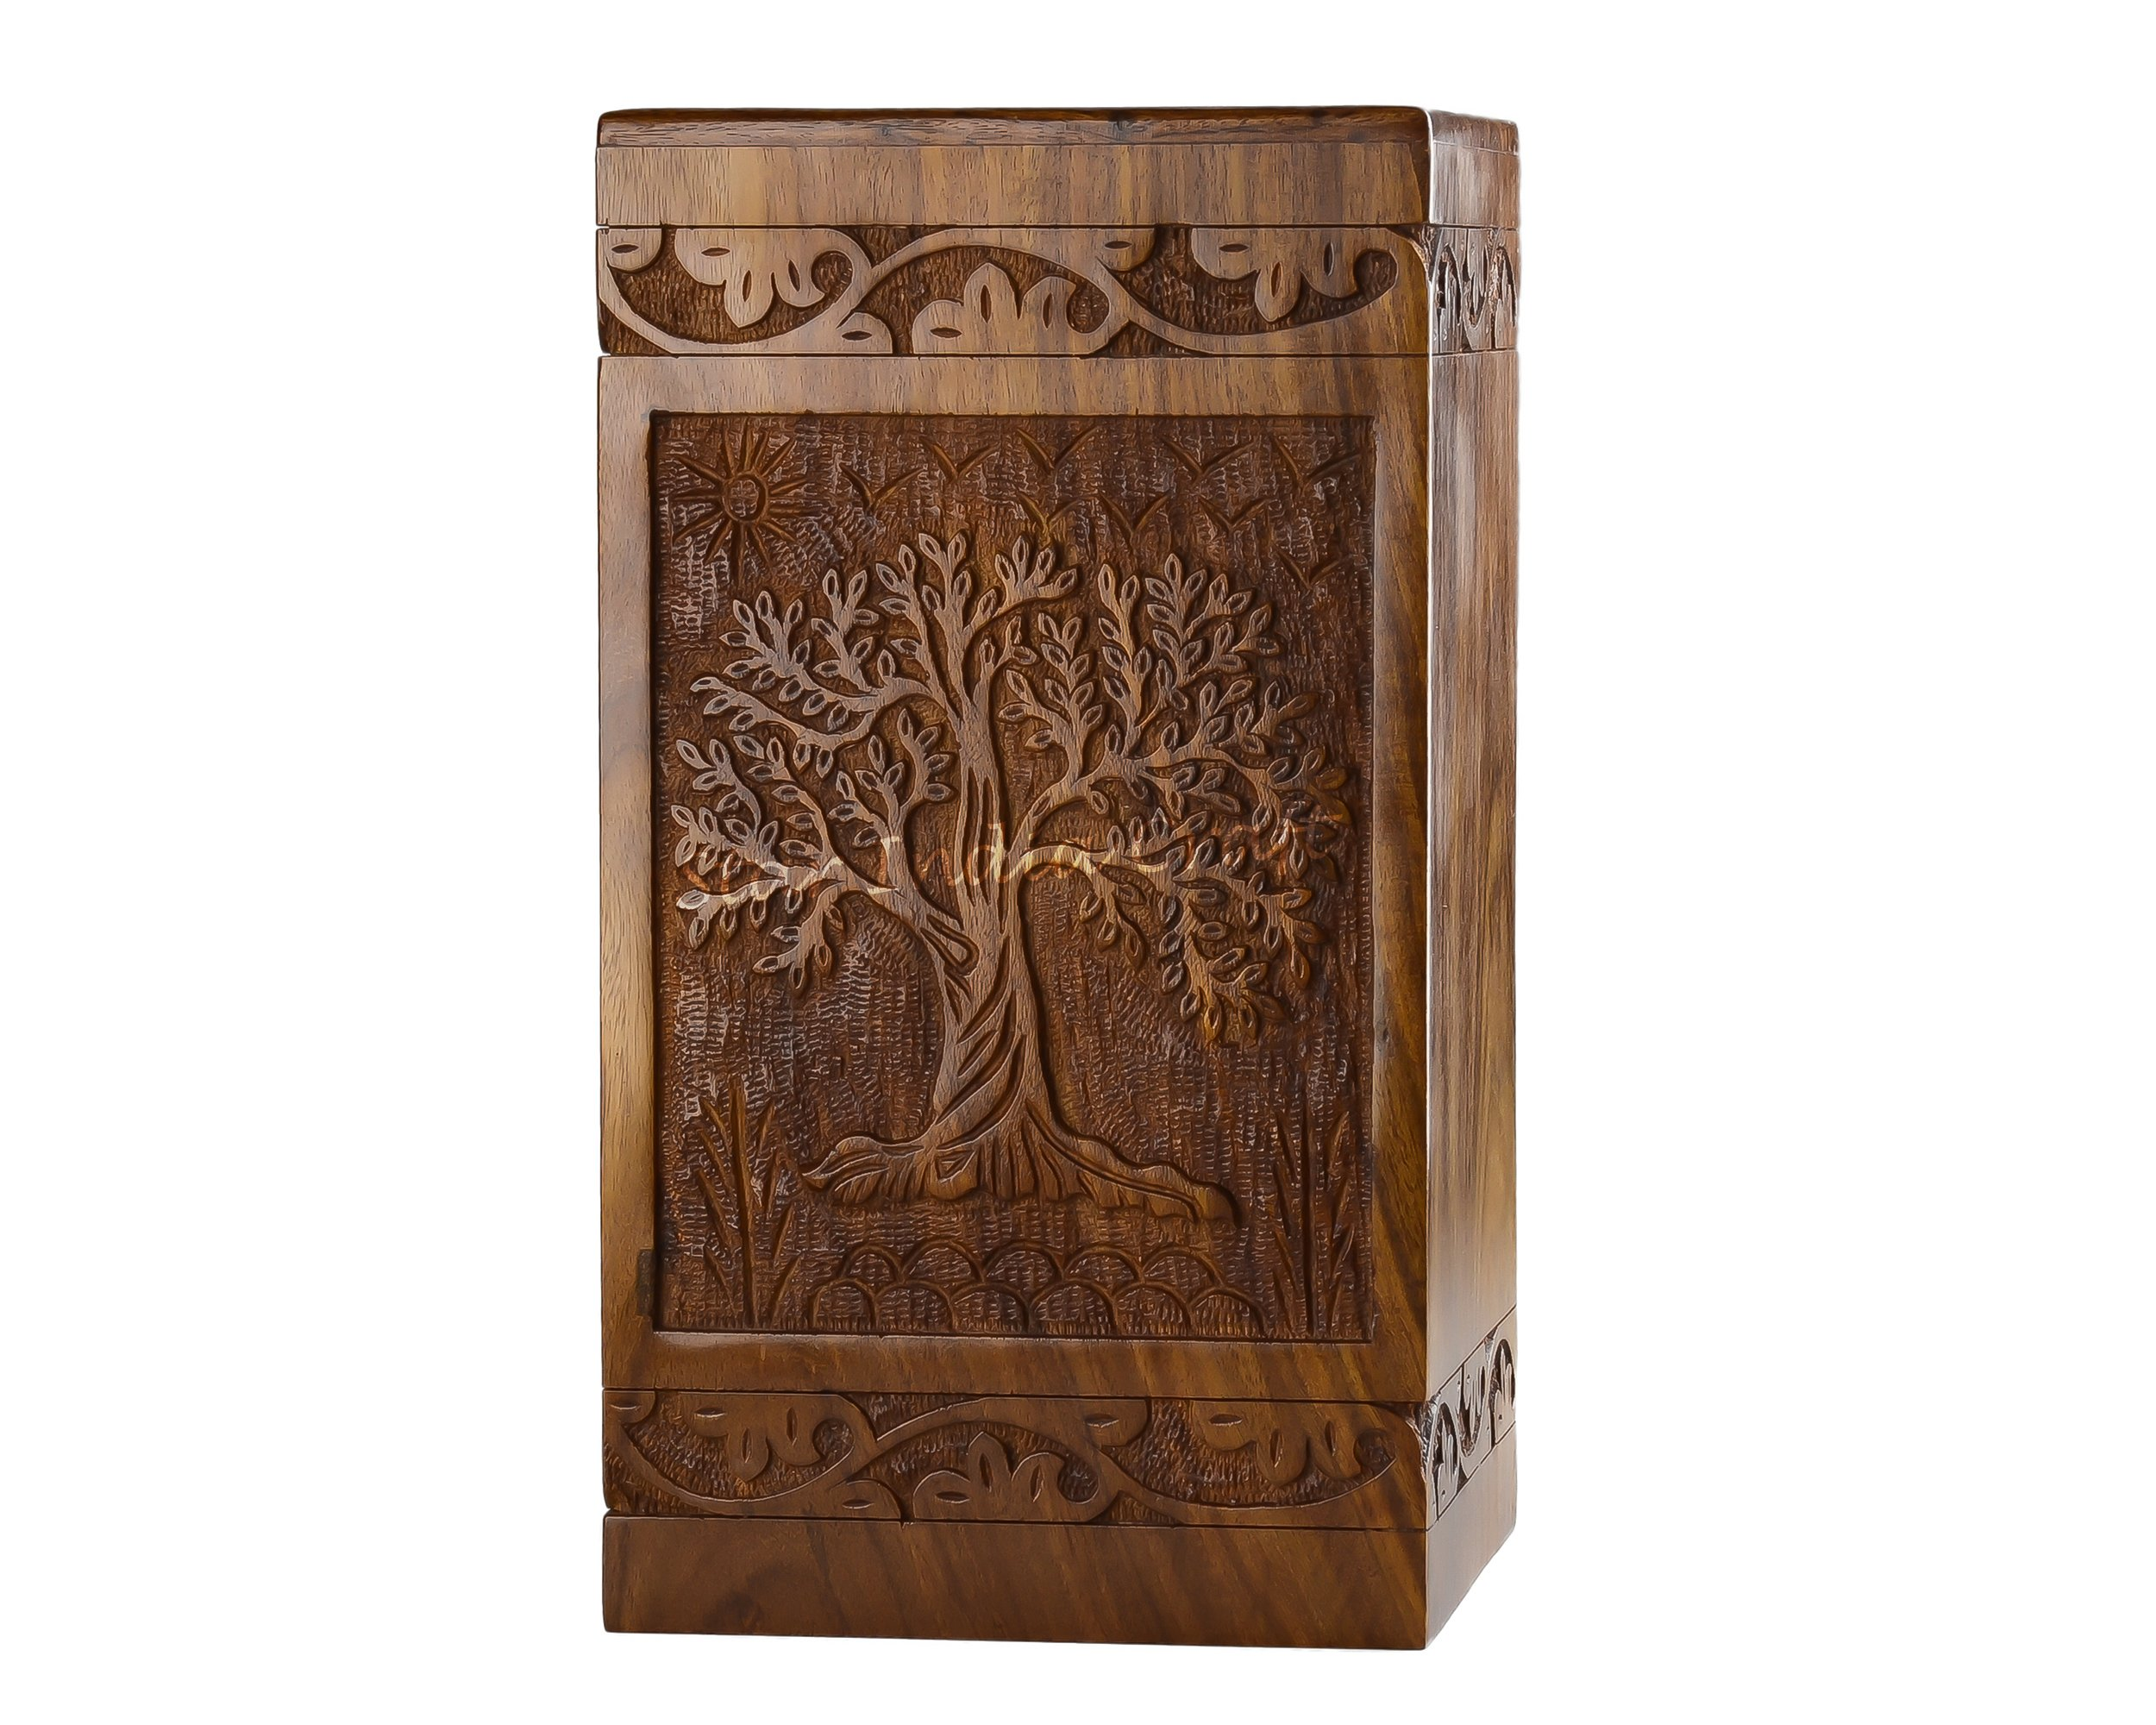 STAR INDIA CRAFT Beautifully Handmade & Handcrafted Tree of Life Engraving Wooden Urns for Human Ashes Adult, Large Wooden Cremation Urns for Ashes Engraving, Wooden Box, Funeral Urn Box- 250 Cu/In